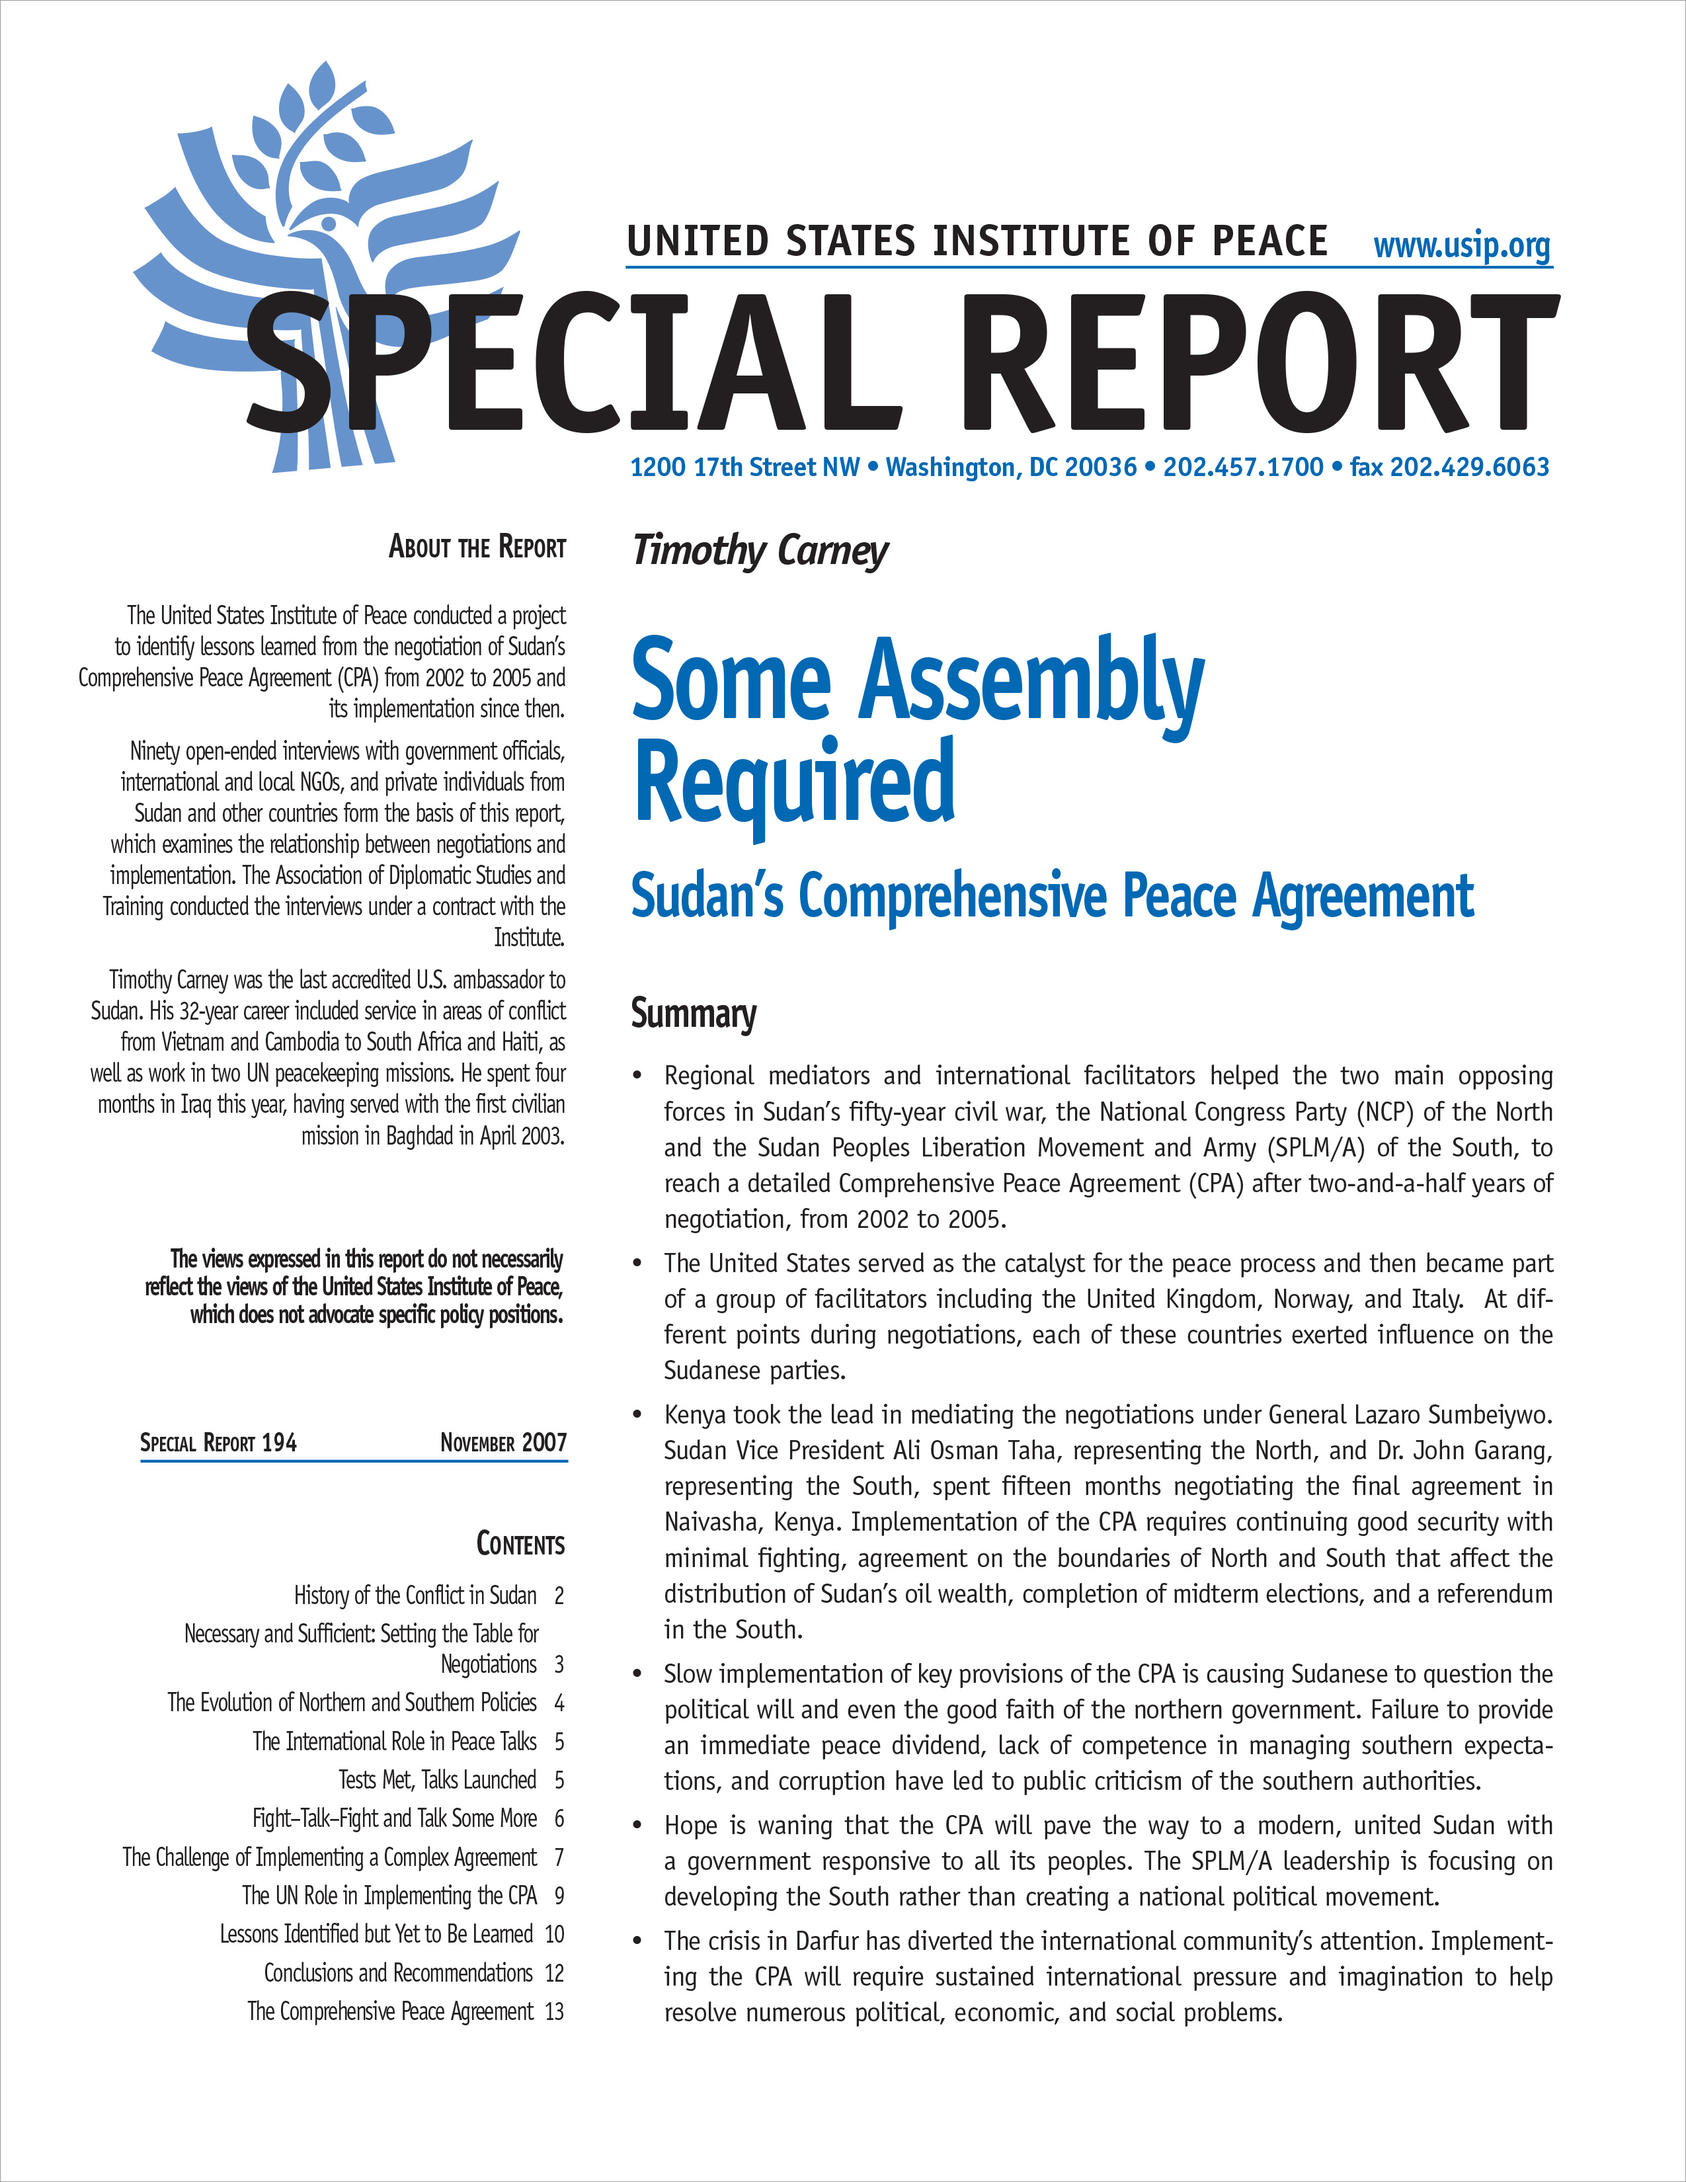 Some Assembly Required Sudans Comprehensive Peace Agreement